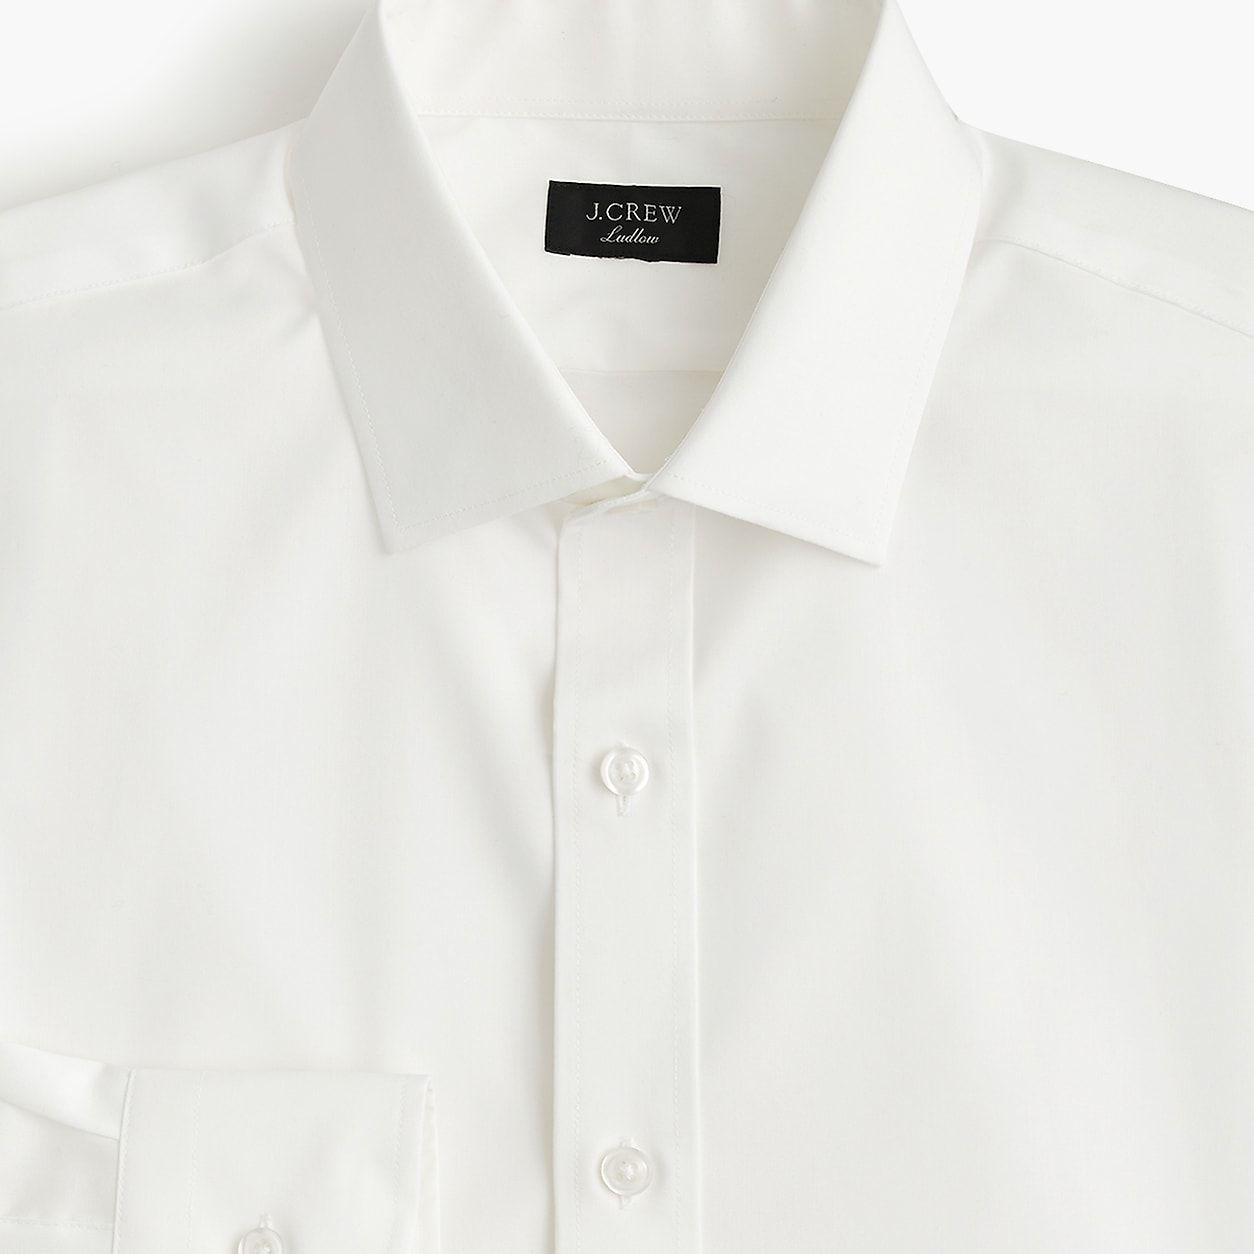 96768f24dea15 Ludlow Slim-Fit Stretch Two-Ply Easy-Care Cotton Dress Shirt In Solid